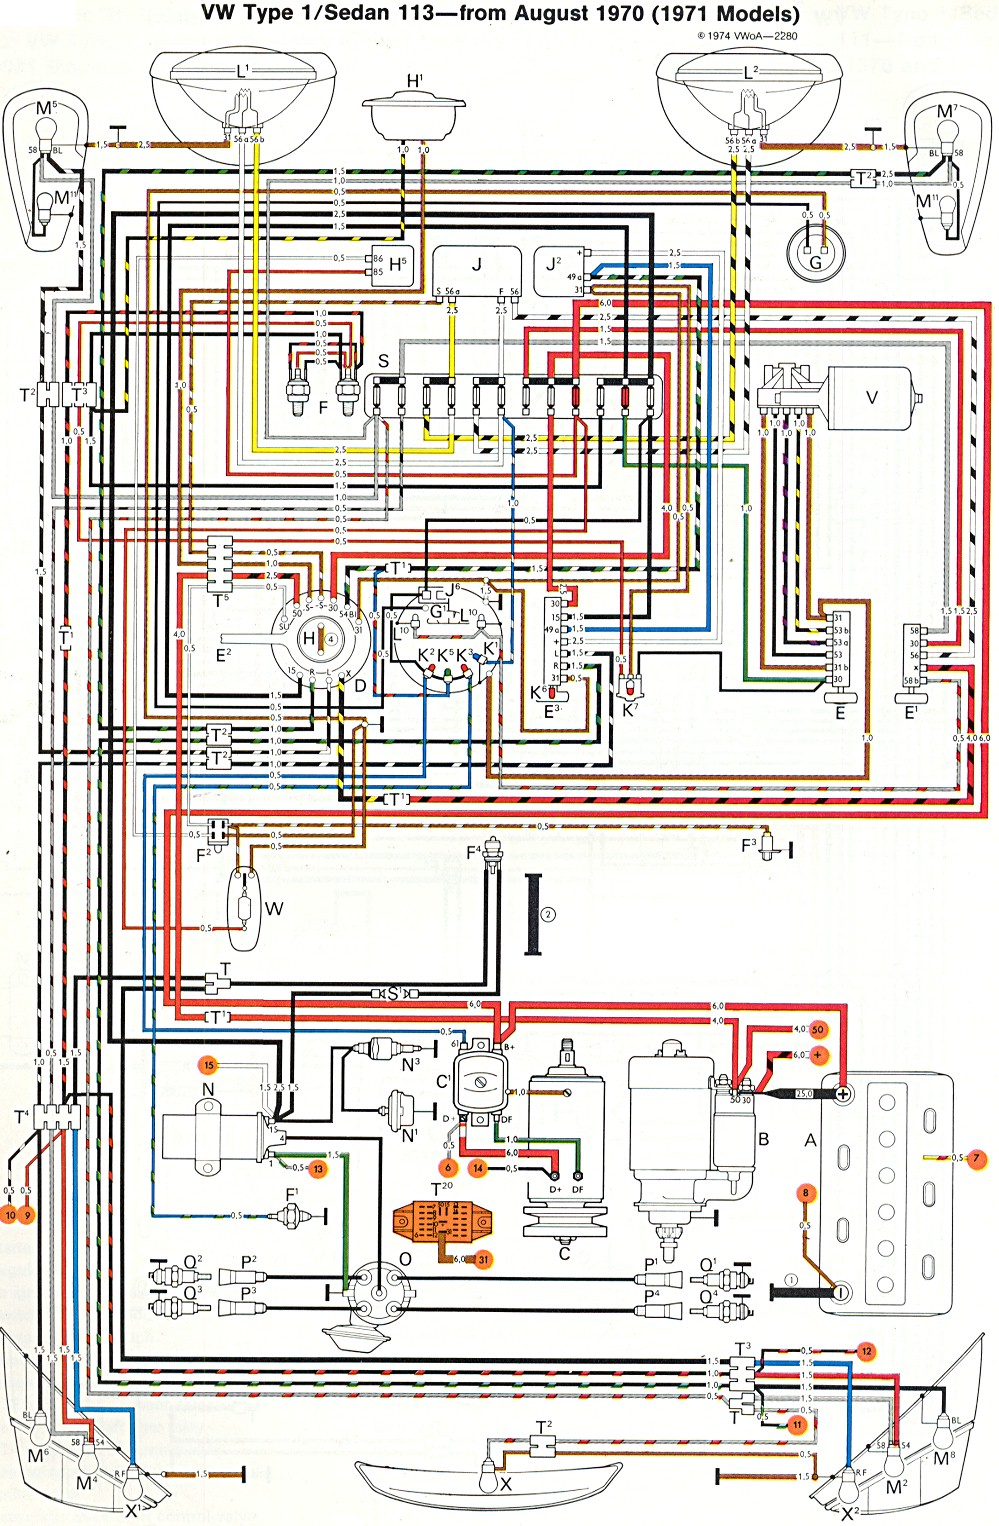 bug_super_71 1971 super beetle wiring diagram thegoldenbug com vw beetle wiring diagram at mr168.co